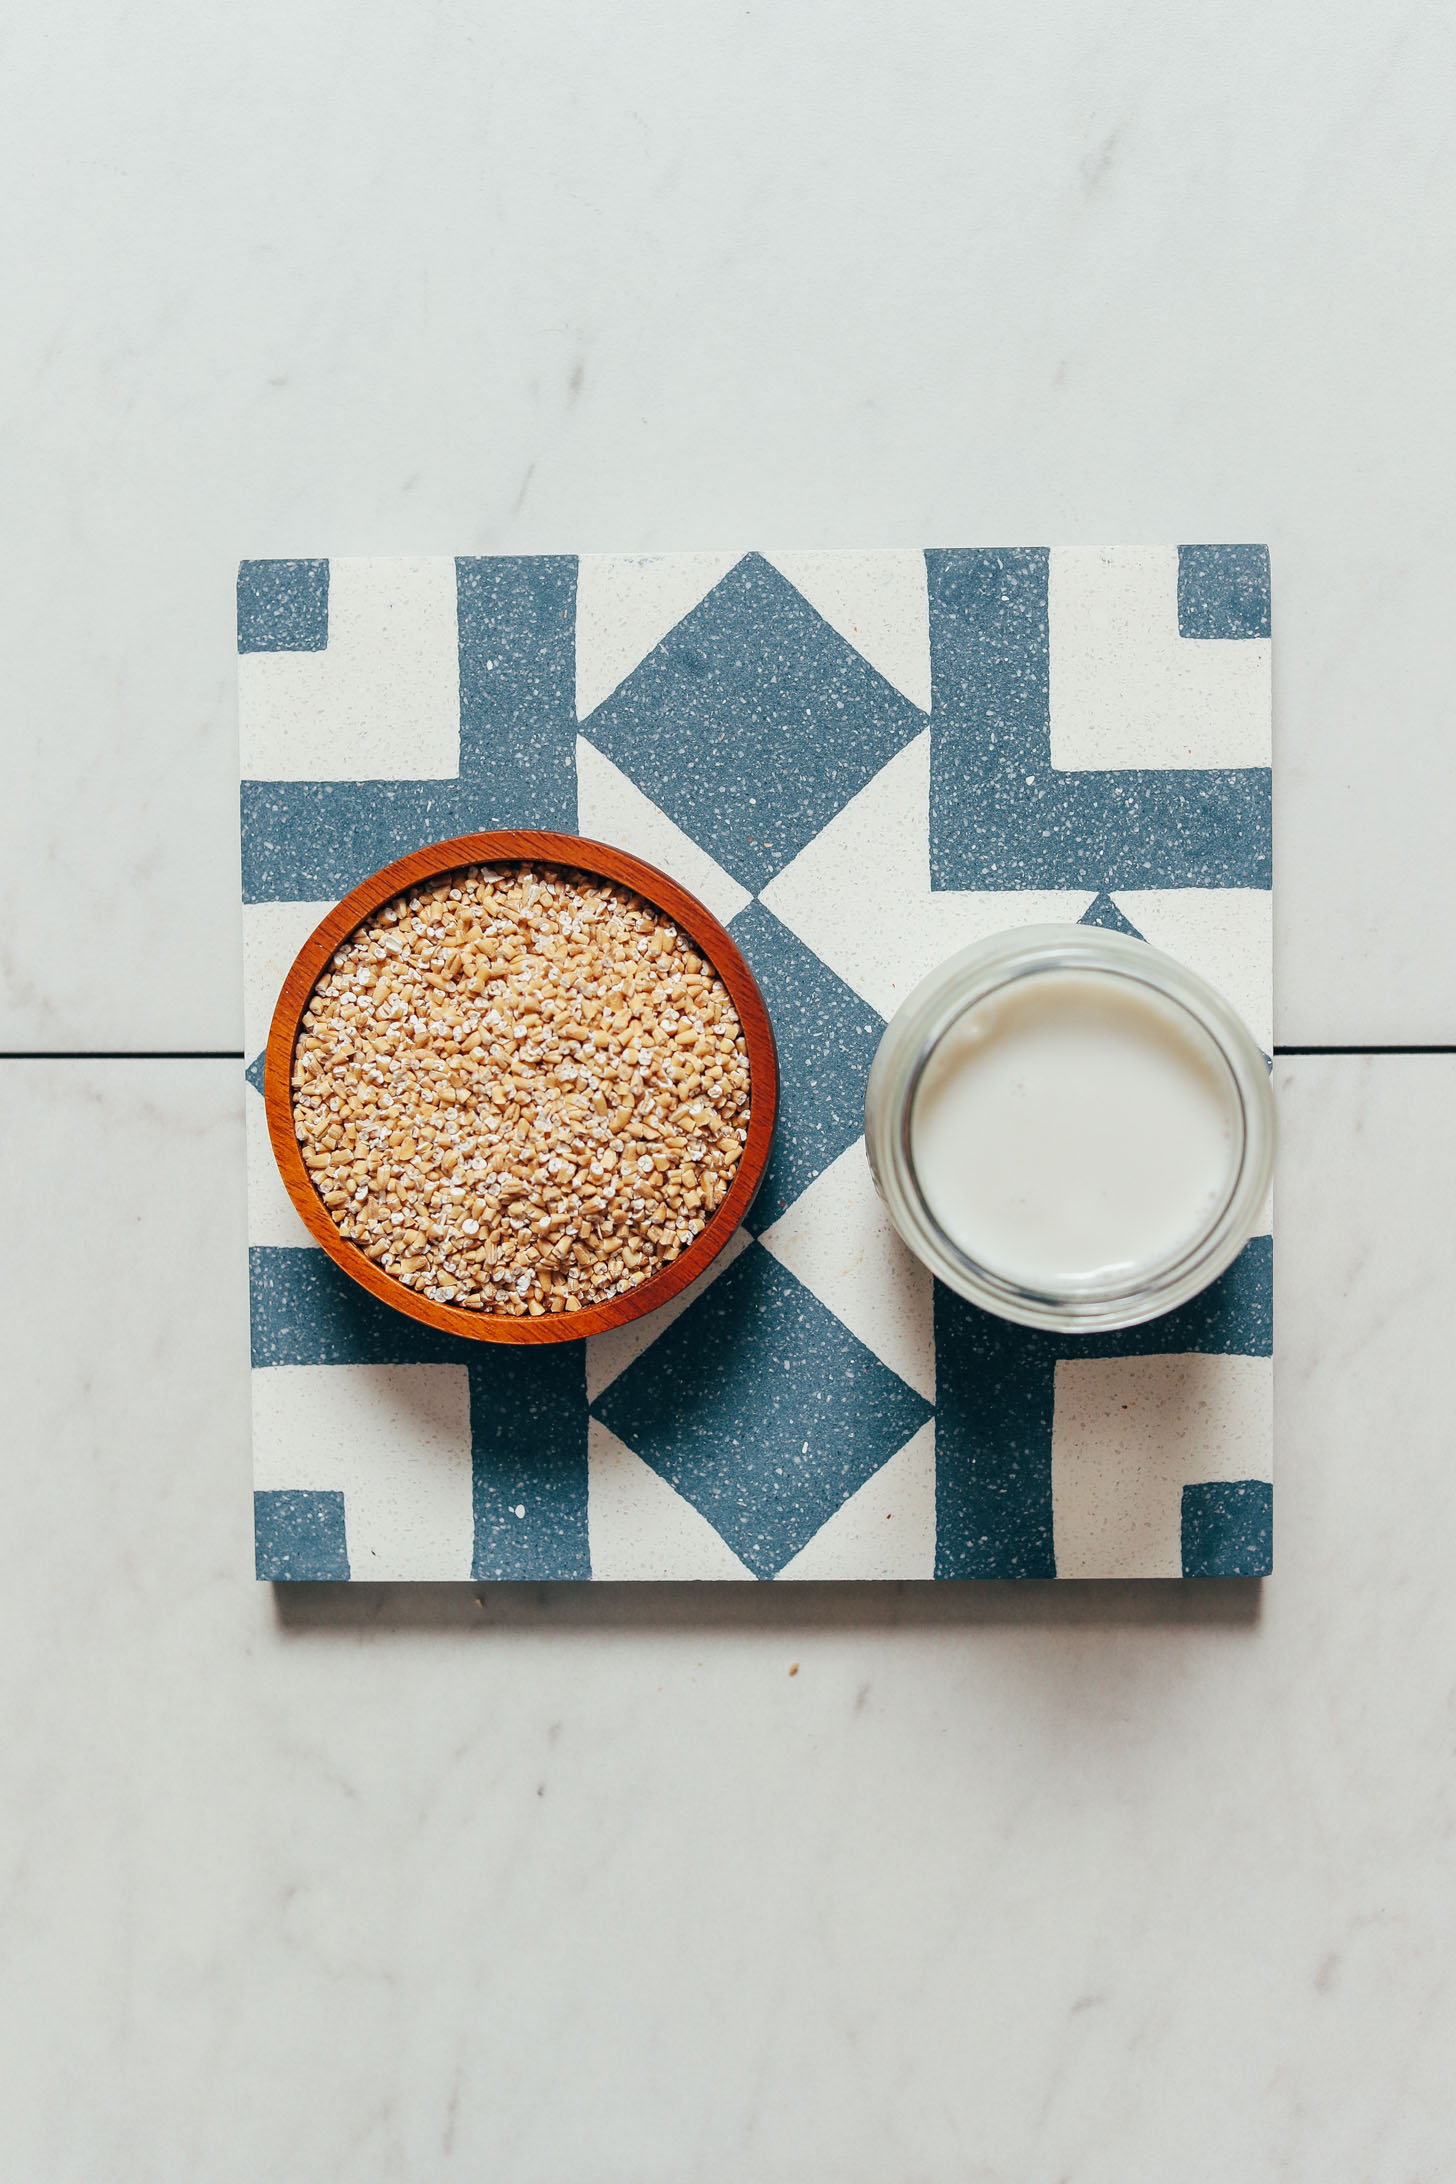 Bowl of steel cut oats and jar of dairy-free milk